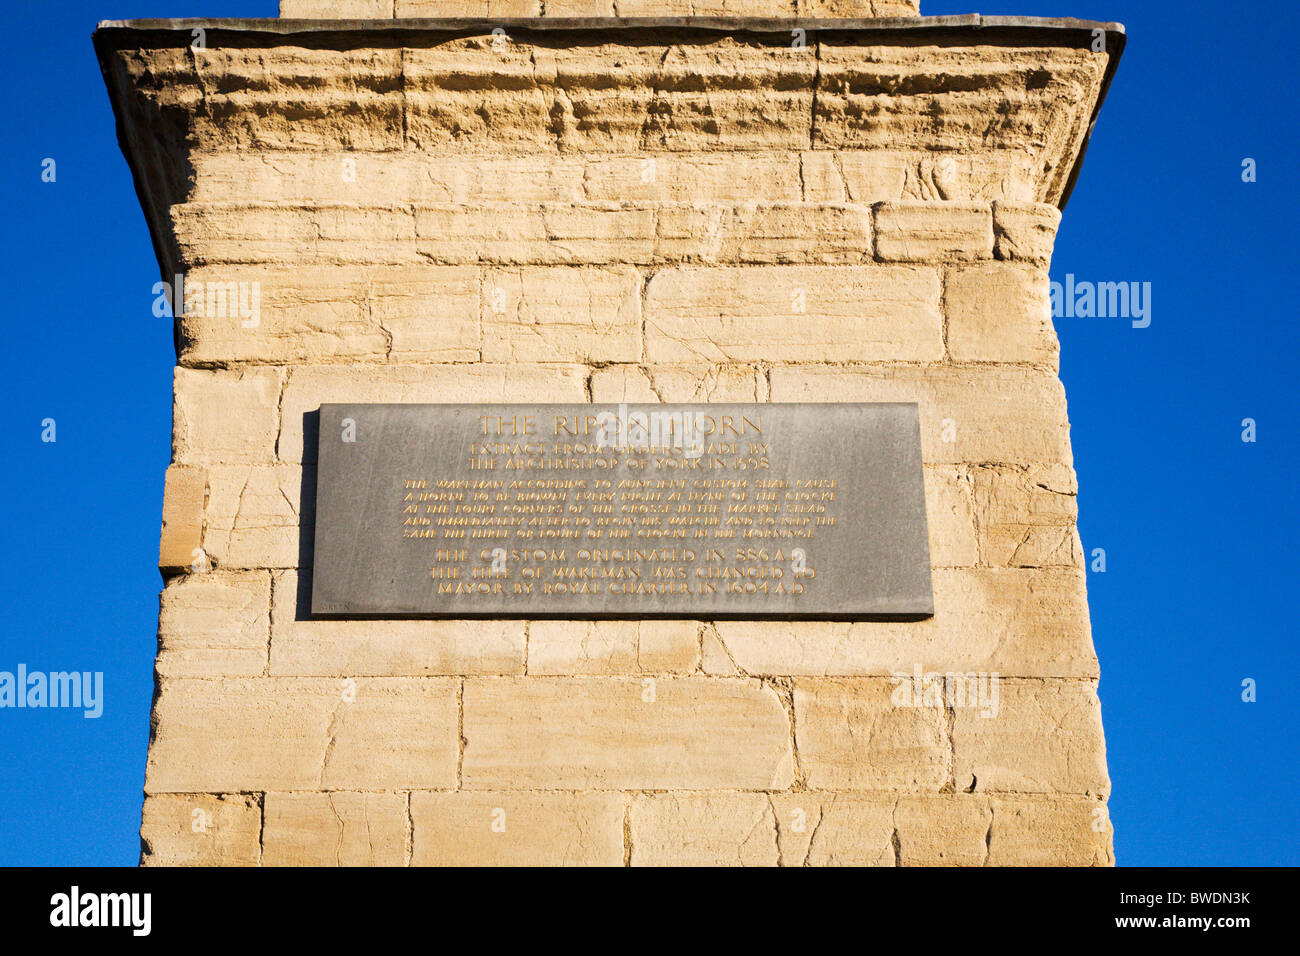 Ripon Horn Plaque on the Plinth of the Market Cross Ripon North Yorkshire England - Stock Image